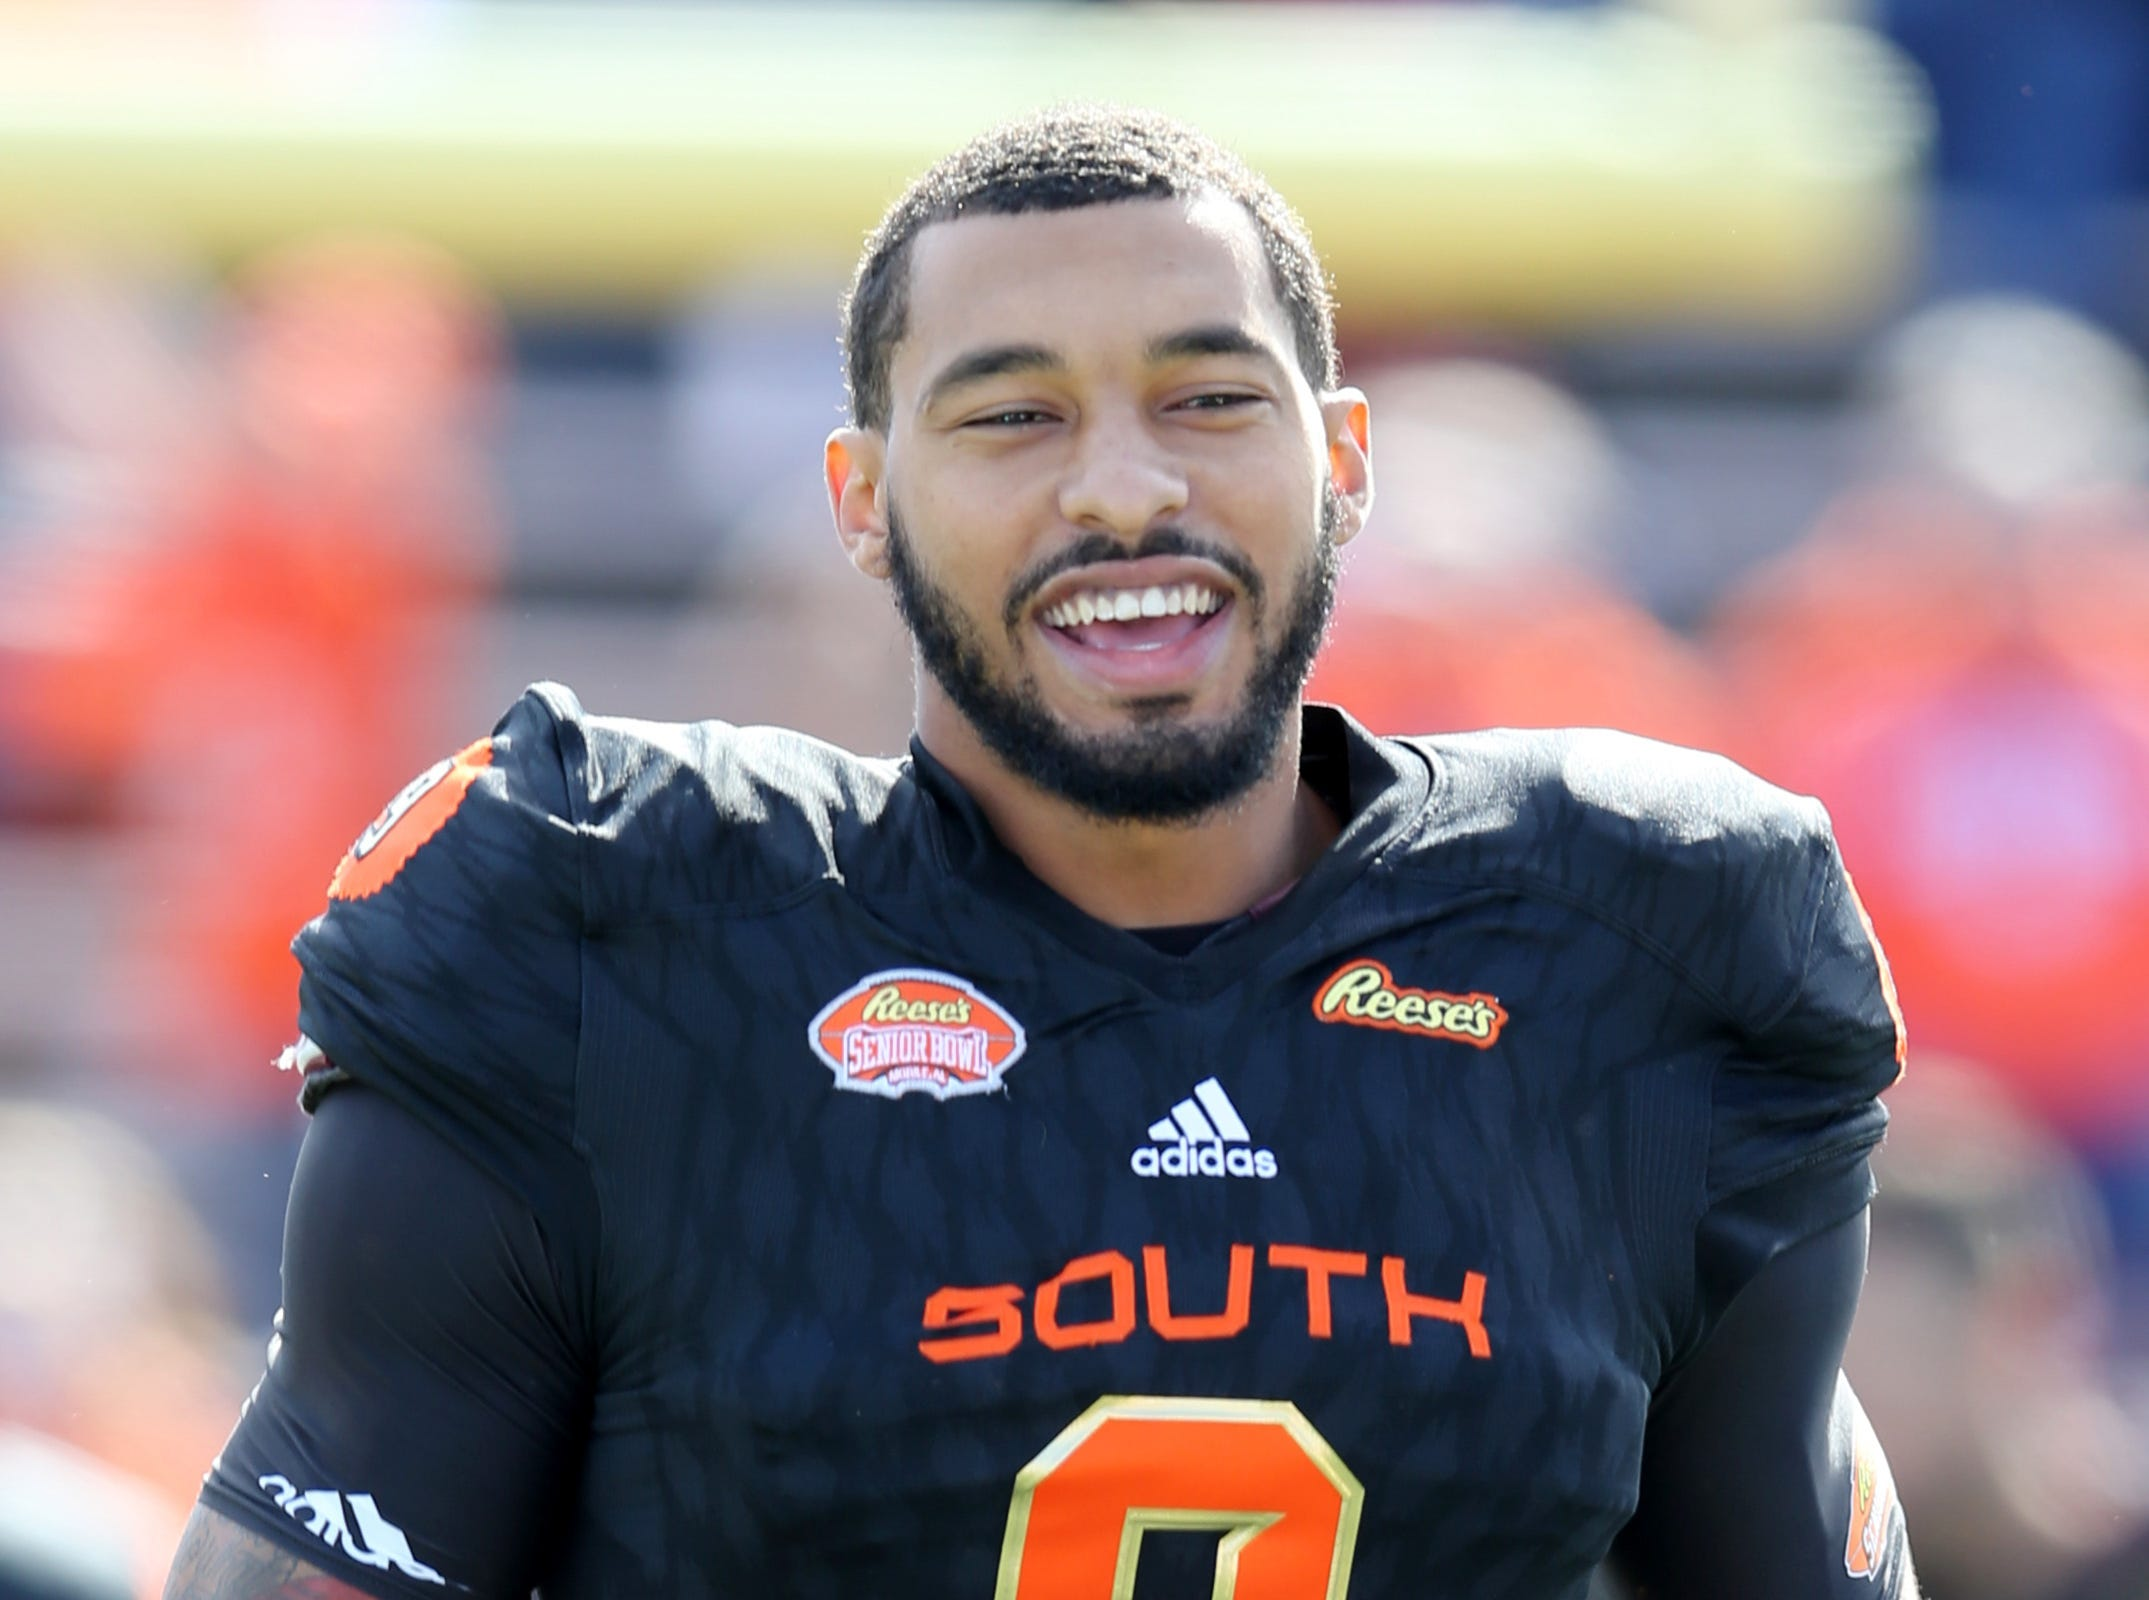 South defensive end Montez Sweat of Mississippi State (9) before the Senior Bowl at Ladd-Peebles Stadium.